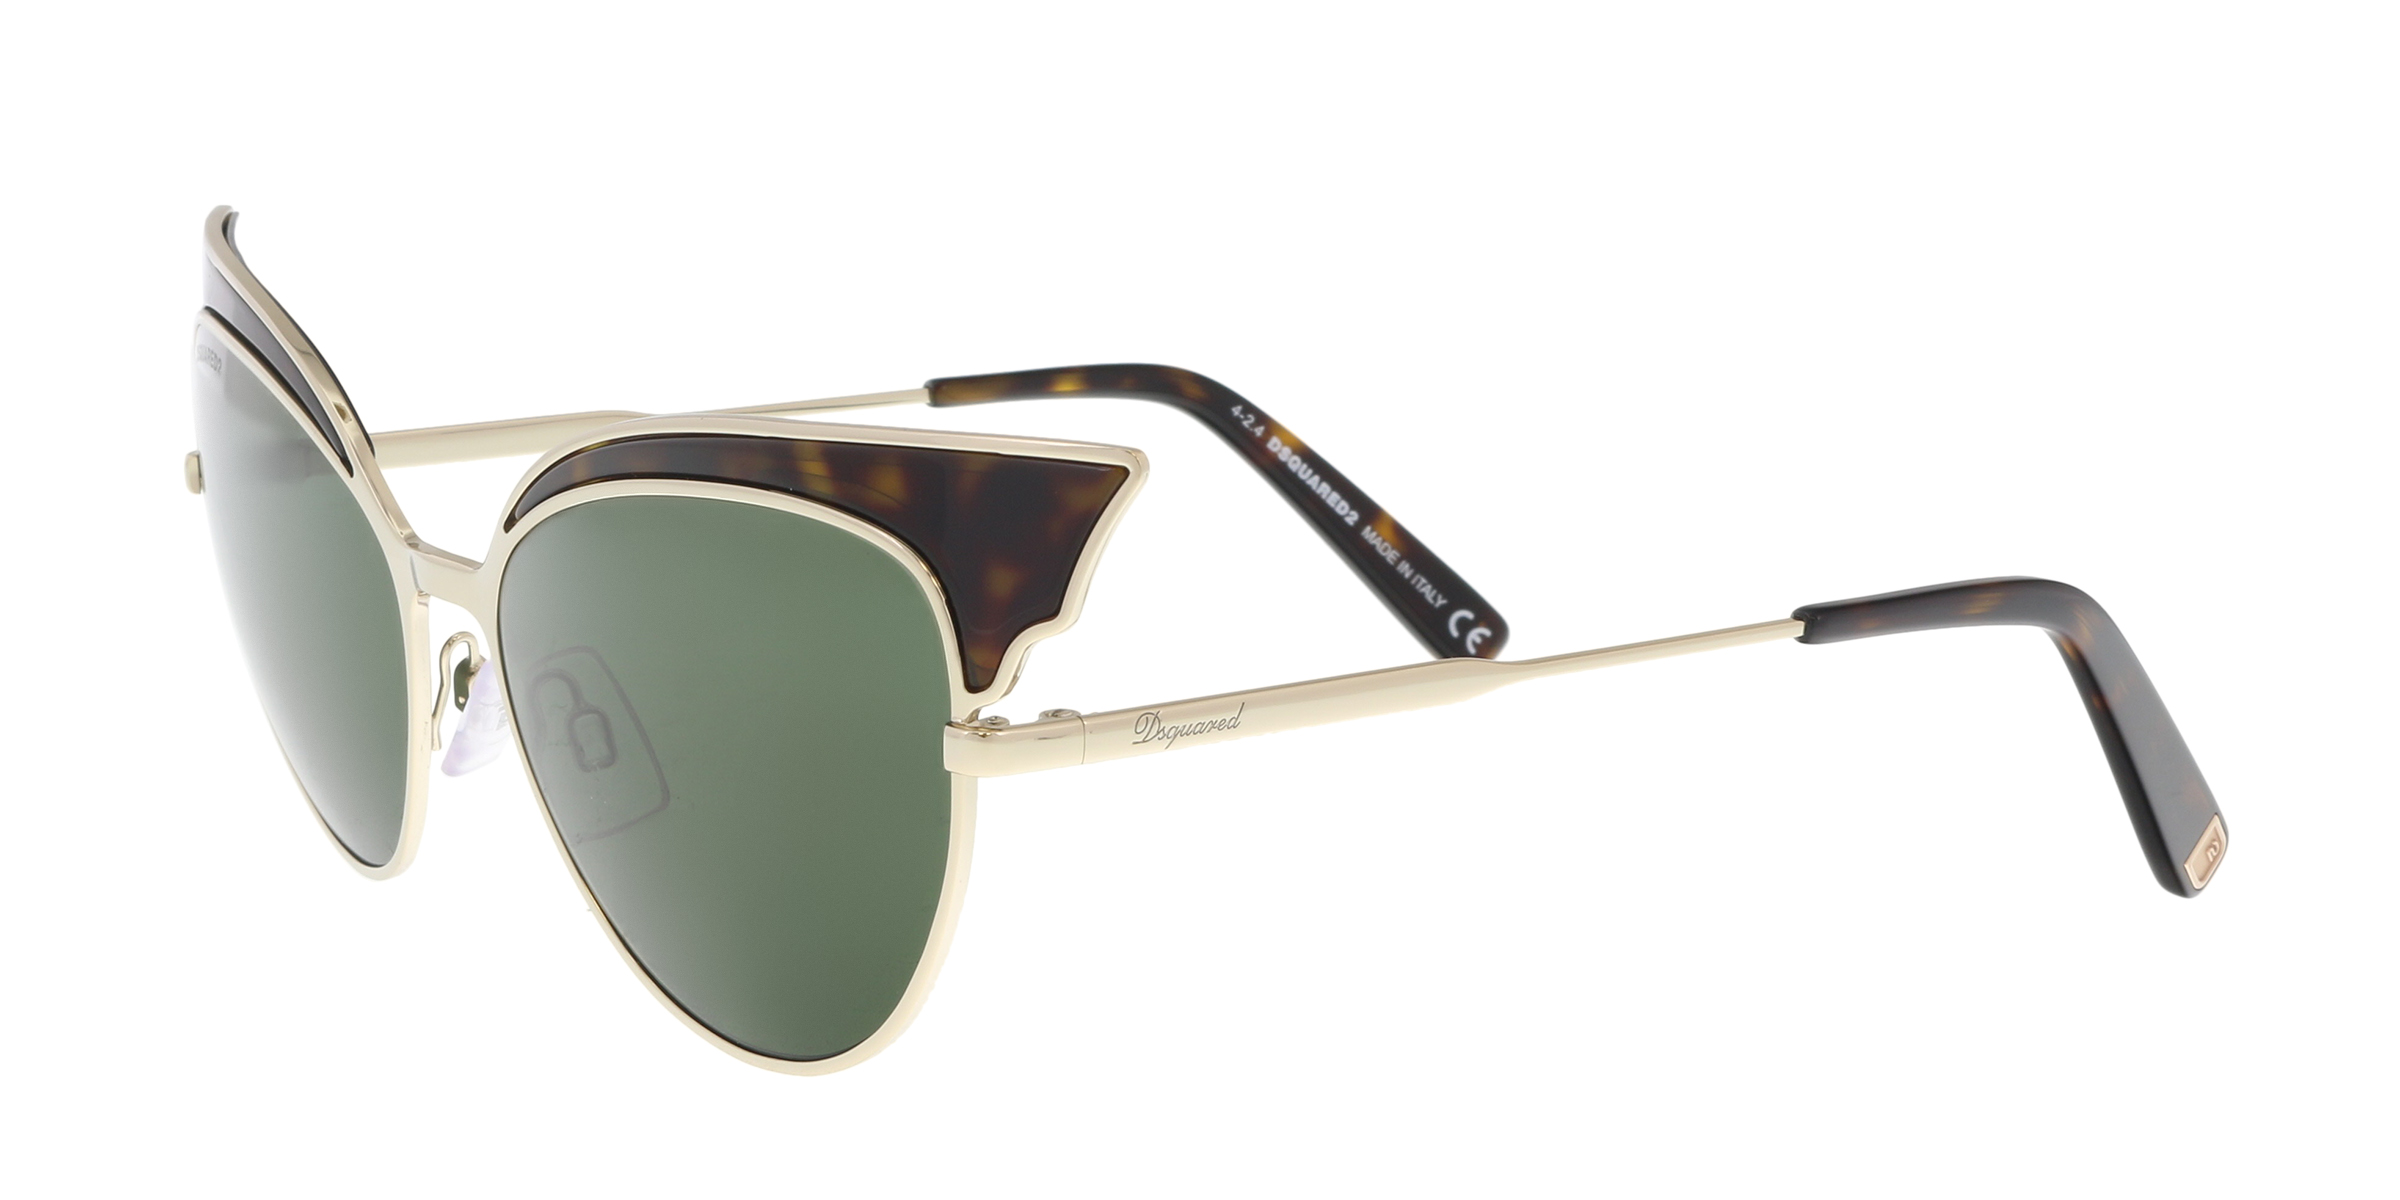 5328d53c85c5f8 Dsquared2 Lollo DQ 166 52n Sunglasses Havana Brown Gold Frame Green ...